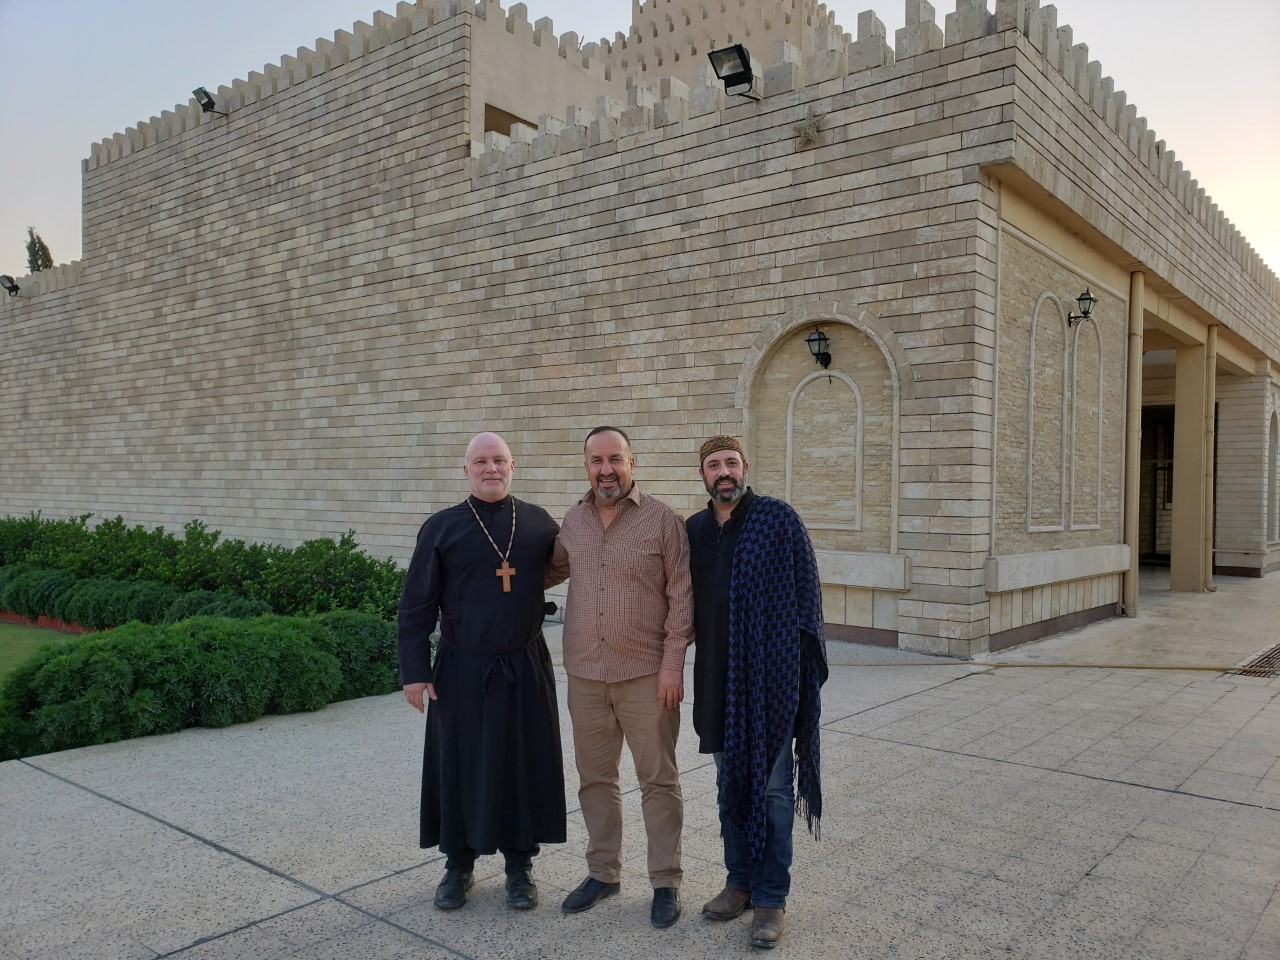 Fr. John, Mr. Ghanim Ilyas Saleem and Mr. John Pinna at the Chaldean Cathedral in Erbil, October 16th 2019